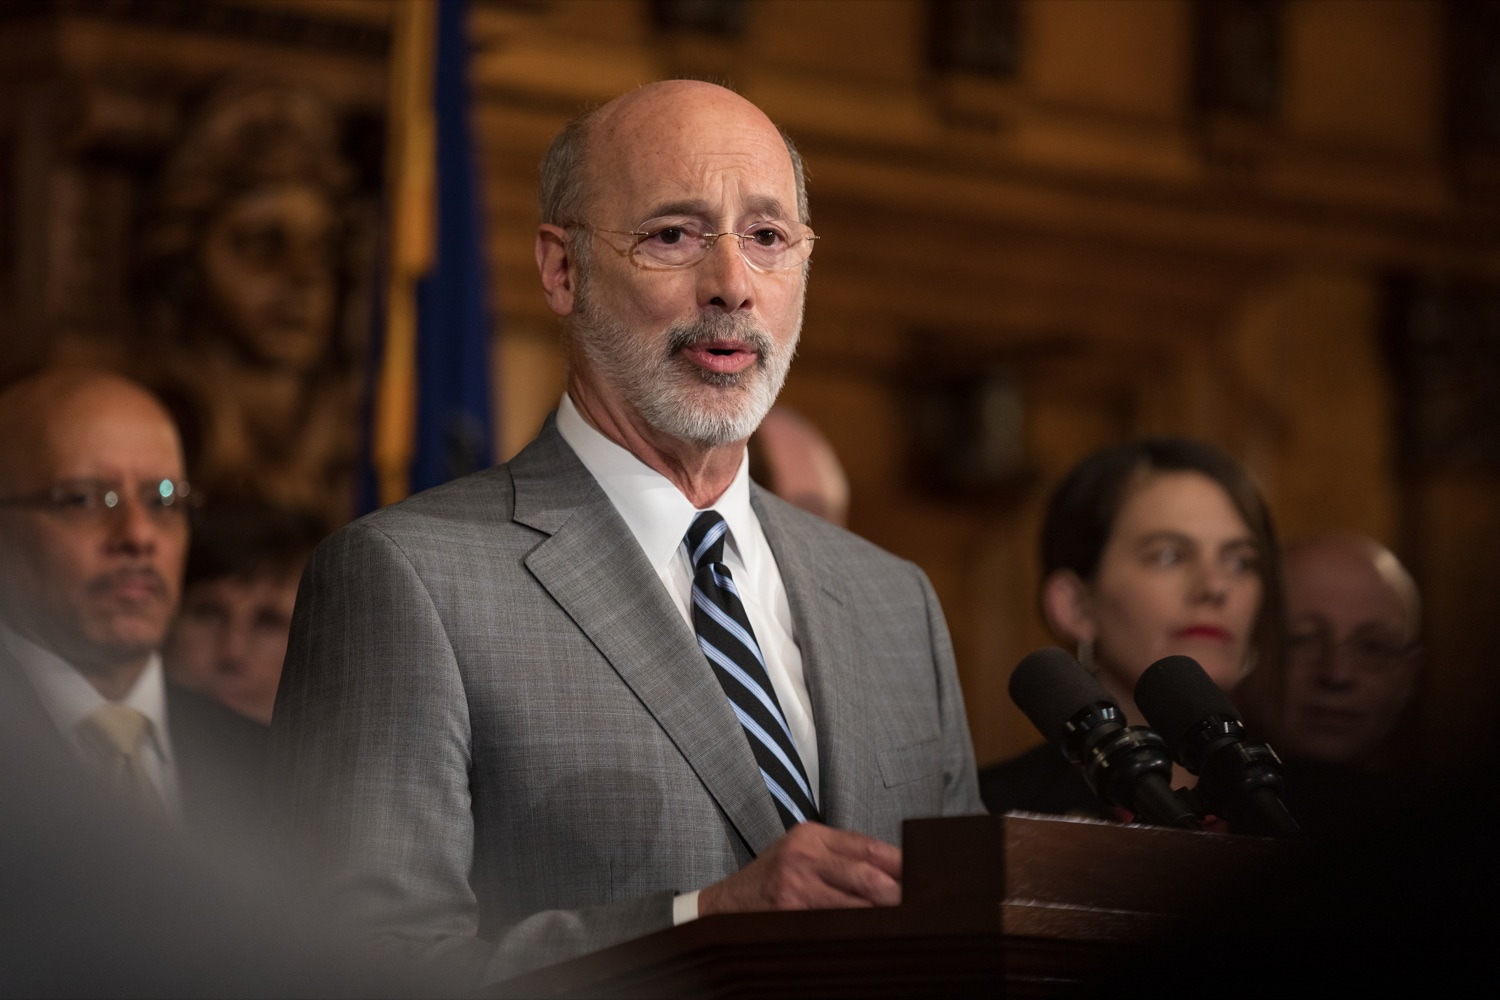 "<a href=""https://filesource.wostreaming.net/commonwealthofpa/photo/17753_GOV_Lead_Contaminants_NK_002.JPG"" target=""_blank"">⇣ Download Photo<br></a>Governor Tom Wolf speaks during a press conference, during which Governor Wolf proposed 2020-21 budget items totaling more than $1.1 billion to support reducing the risks to Pennsylvanians of lead and asbestos, inside the Governor's Reception Room at the State Capitol building in Harrisburg on Wednesday, January 29, 2020."